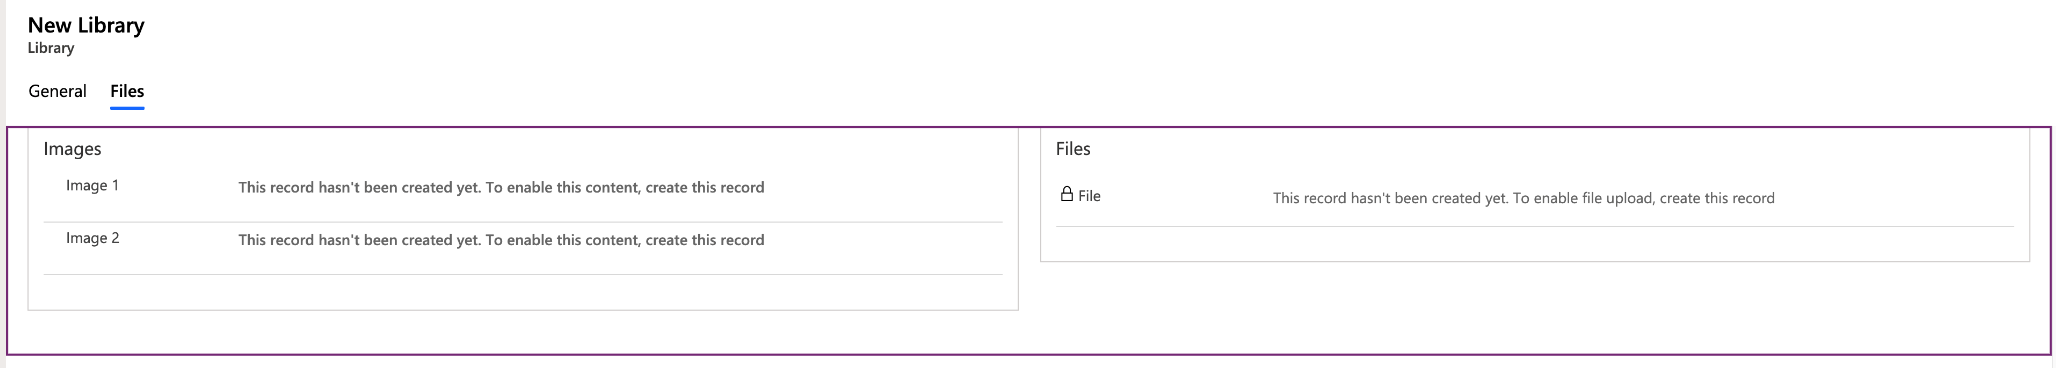 File and Image type attributes